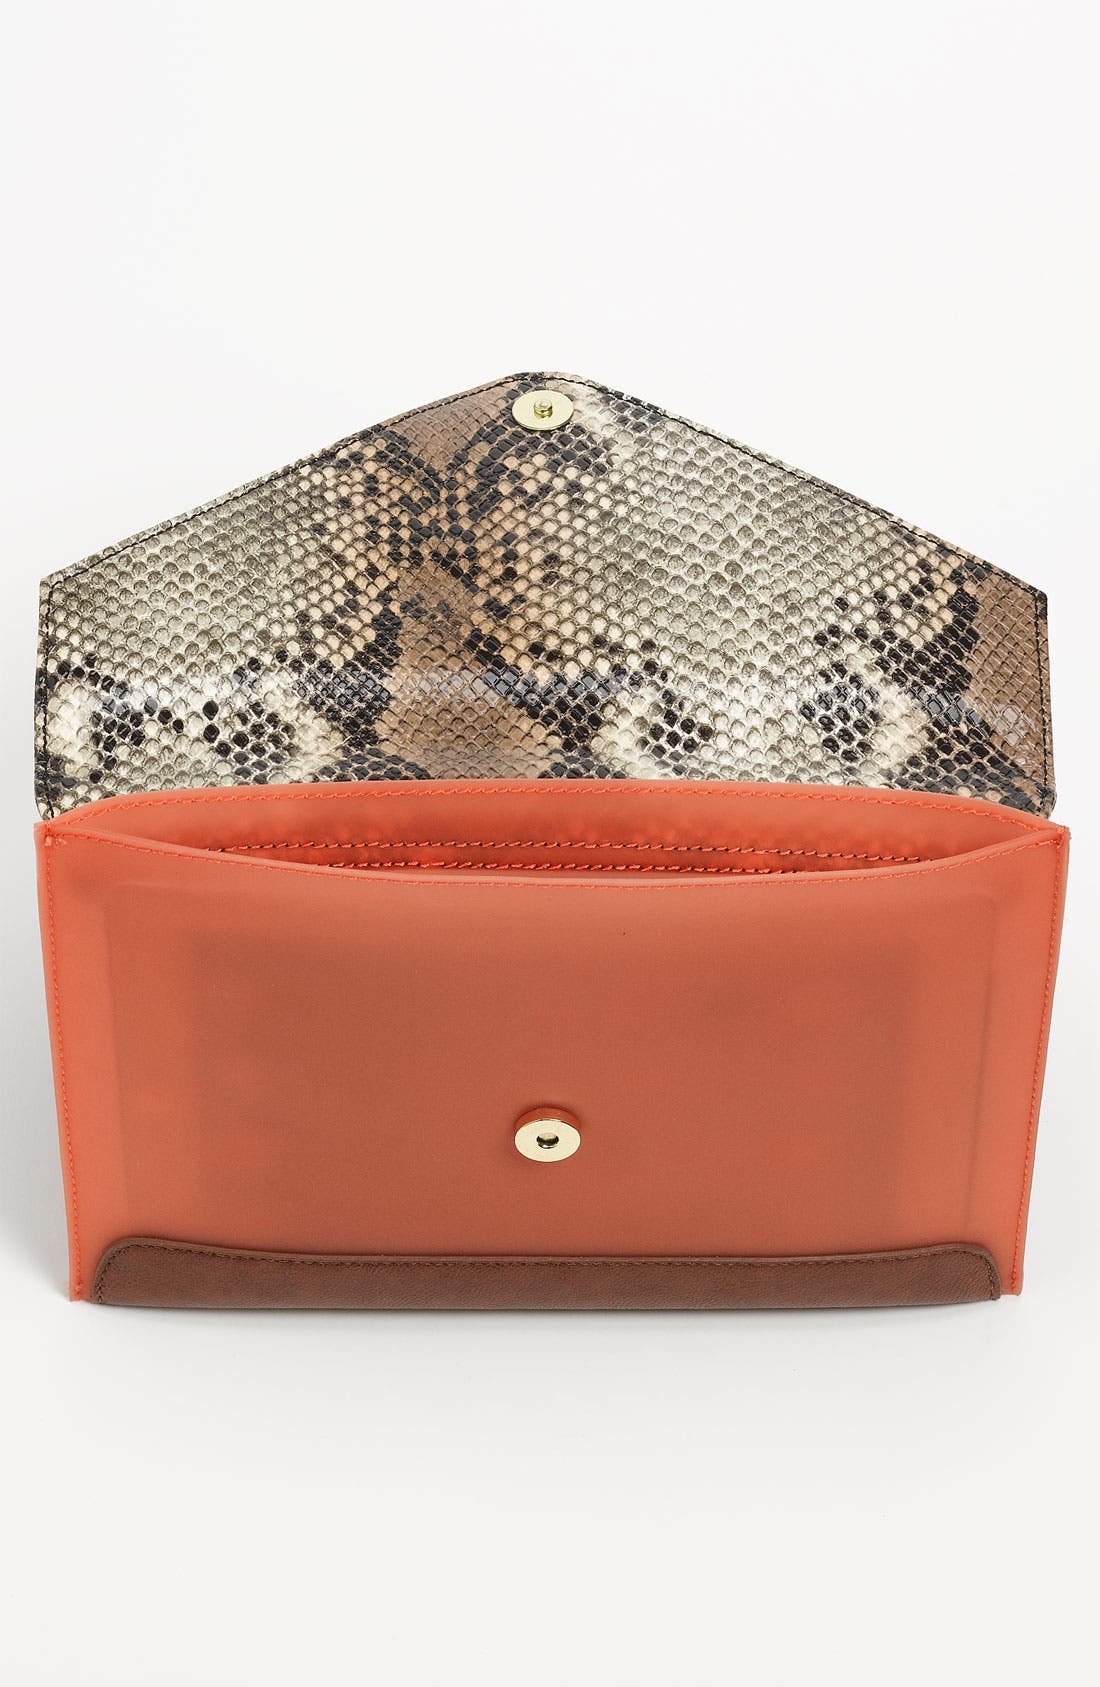 Alternate Image 3  - Danielle Nicole 'Sienna' Envelope Clutch